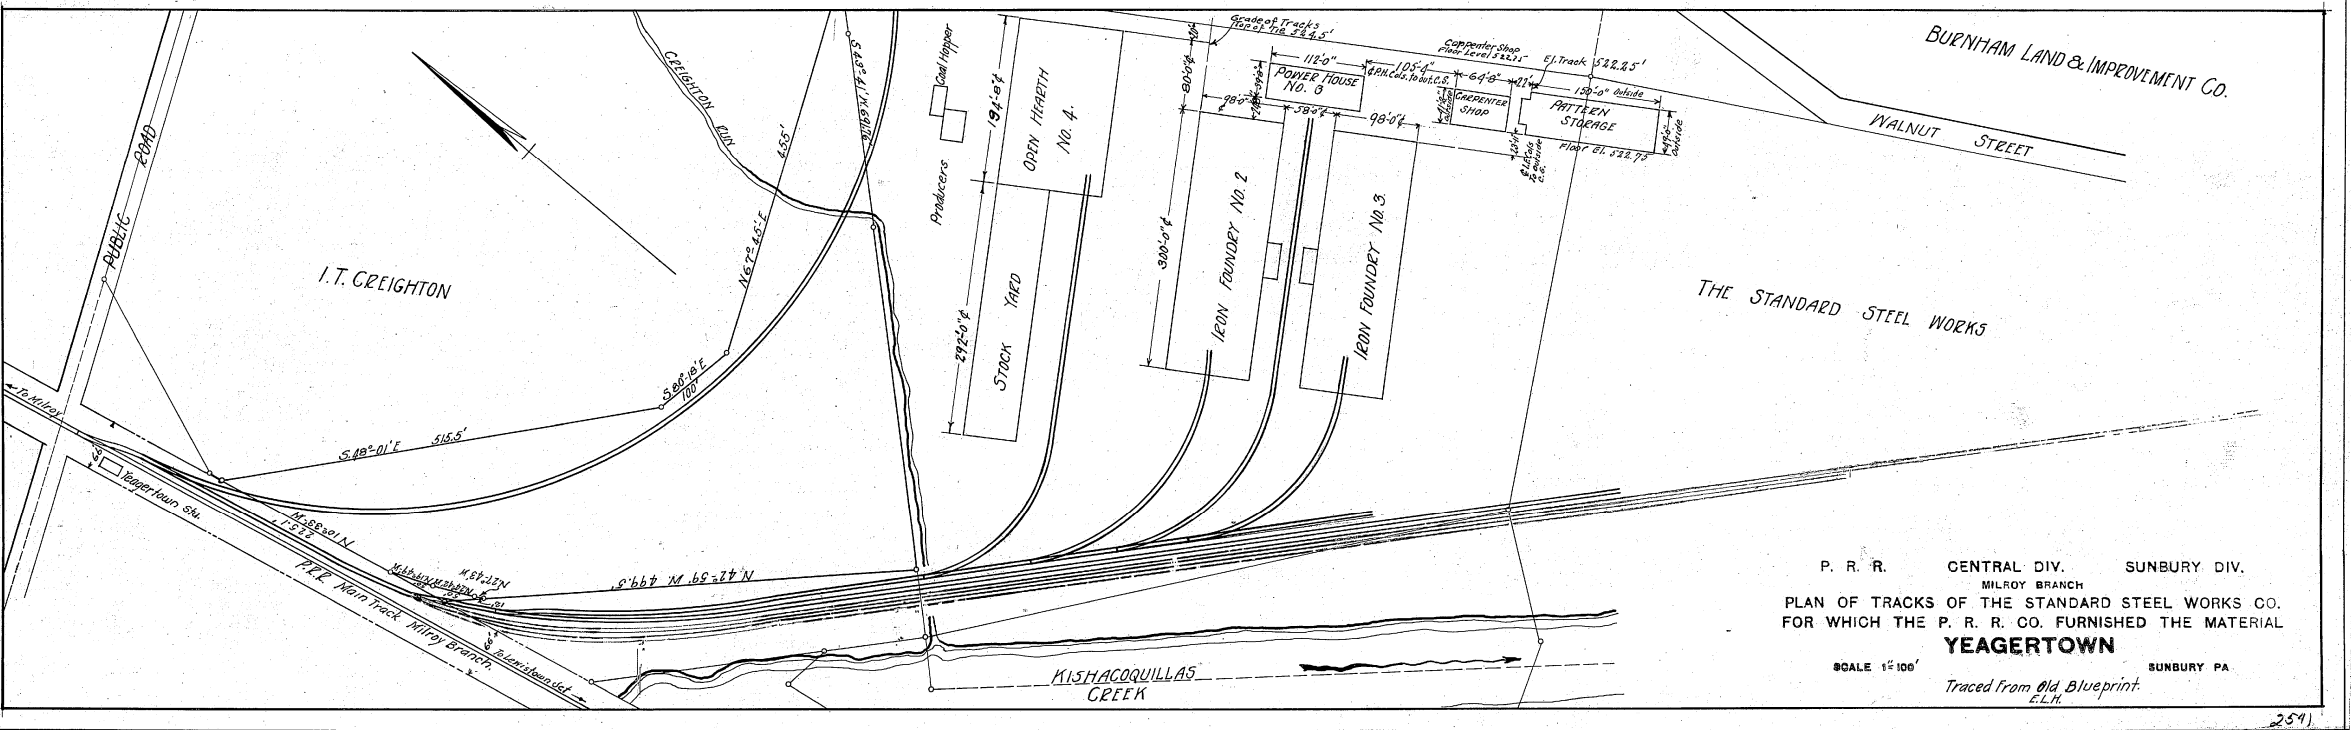 undated 1902 Track Diagram of Standard Steel